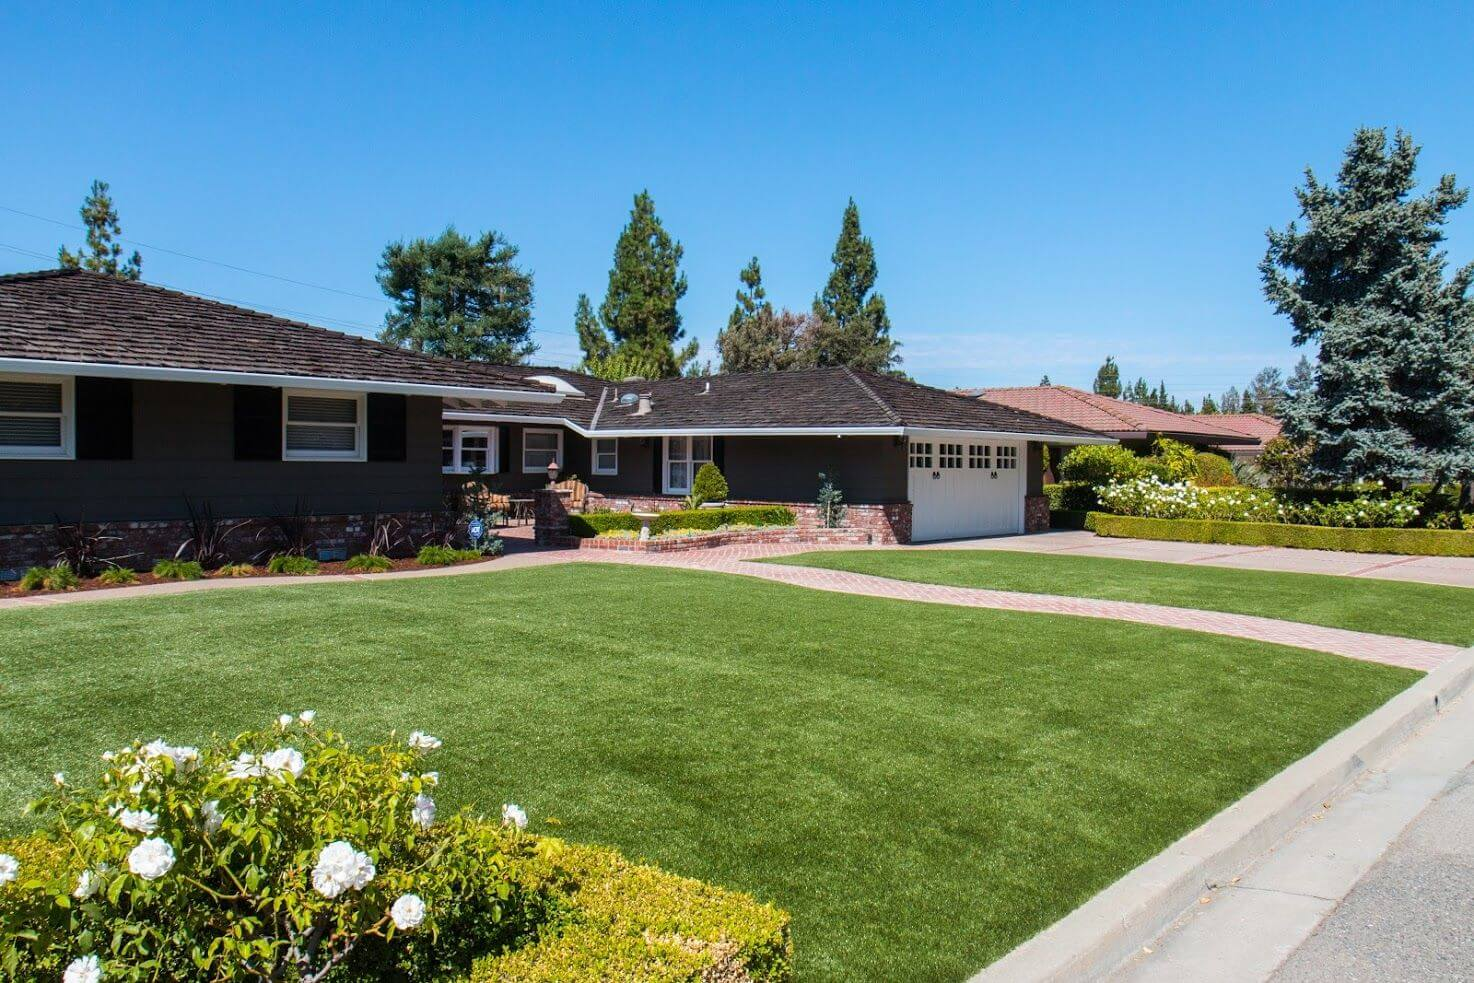 home with turf